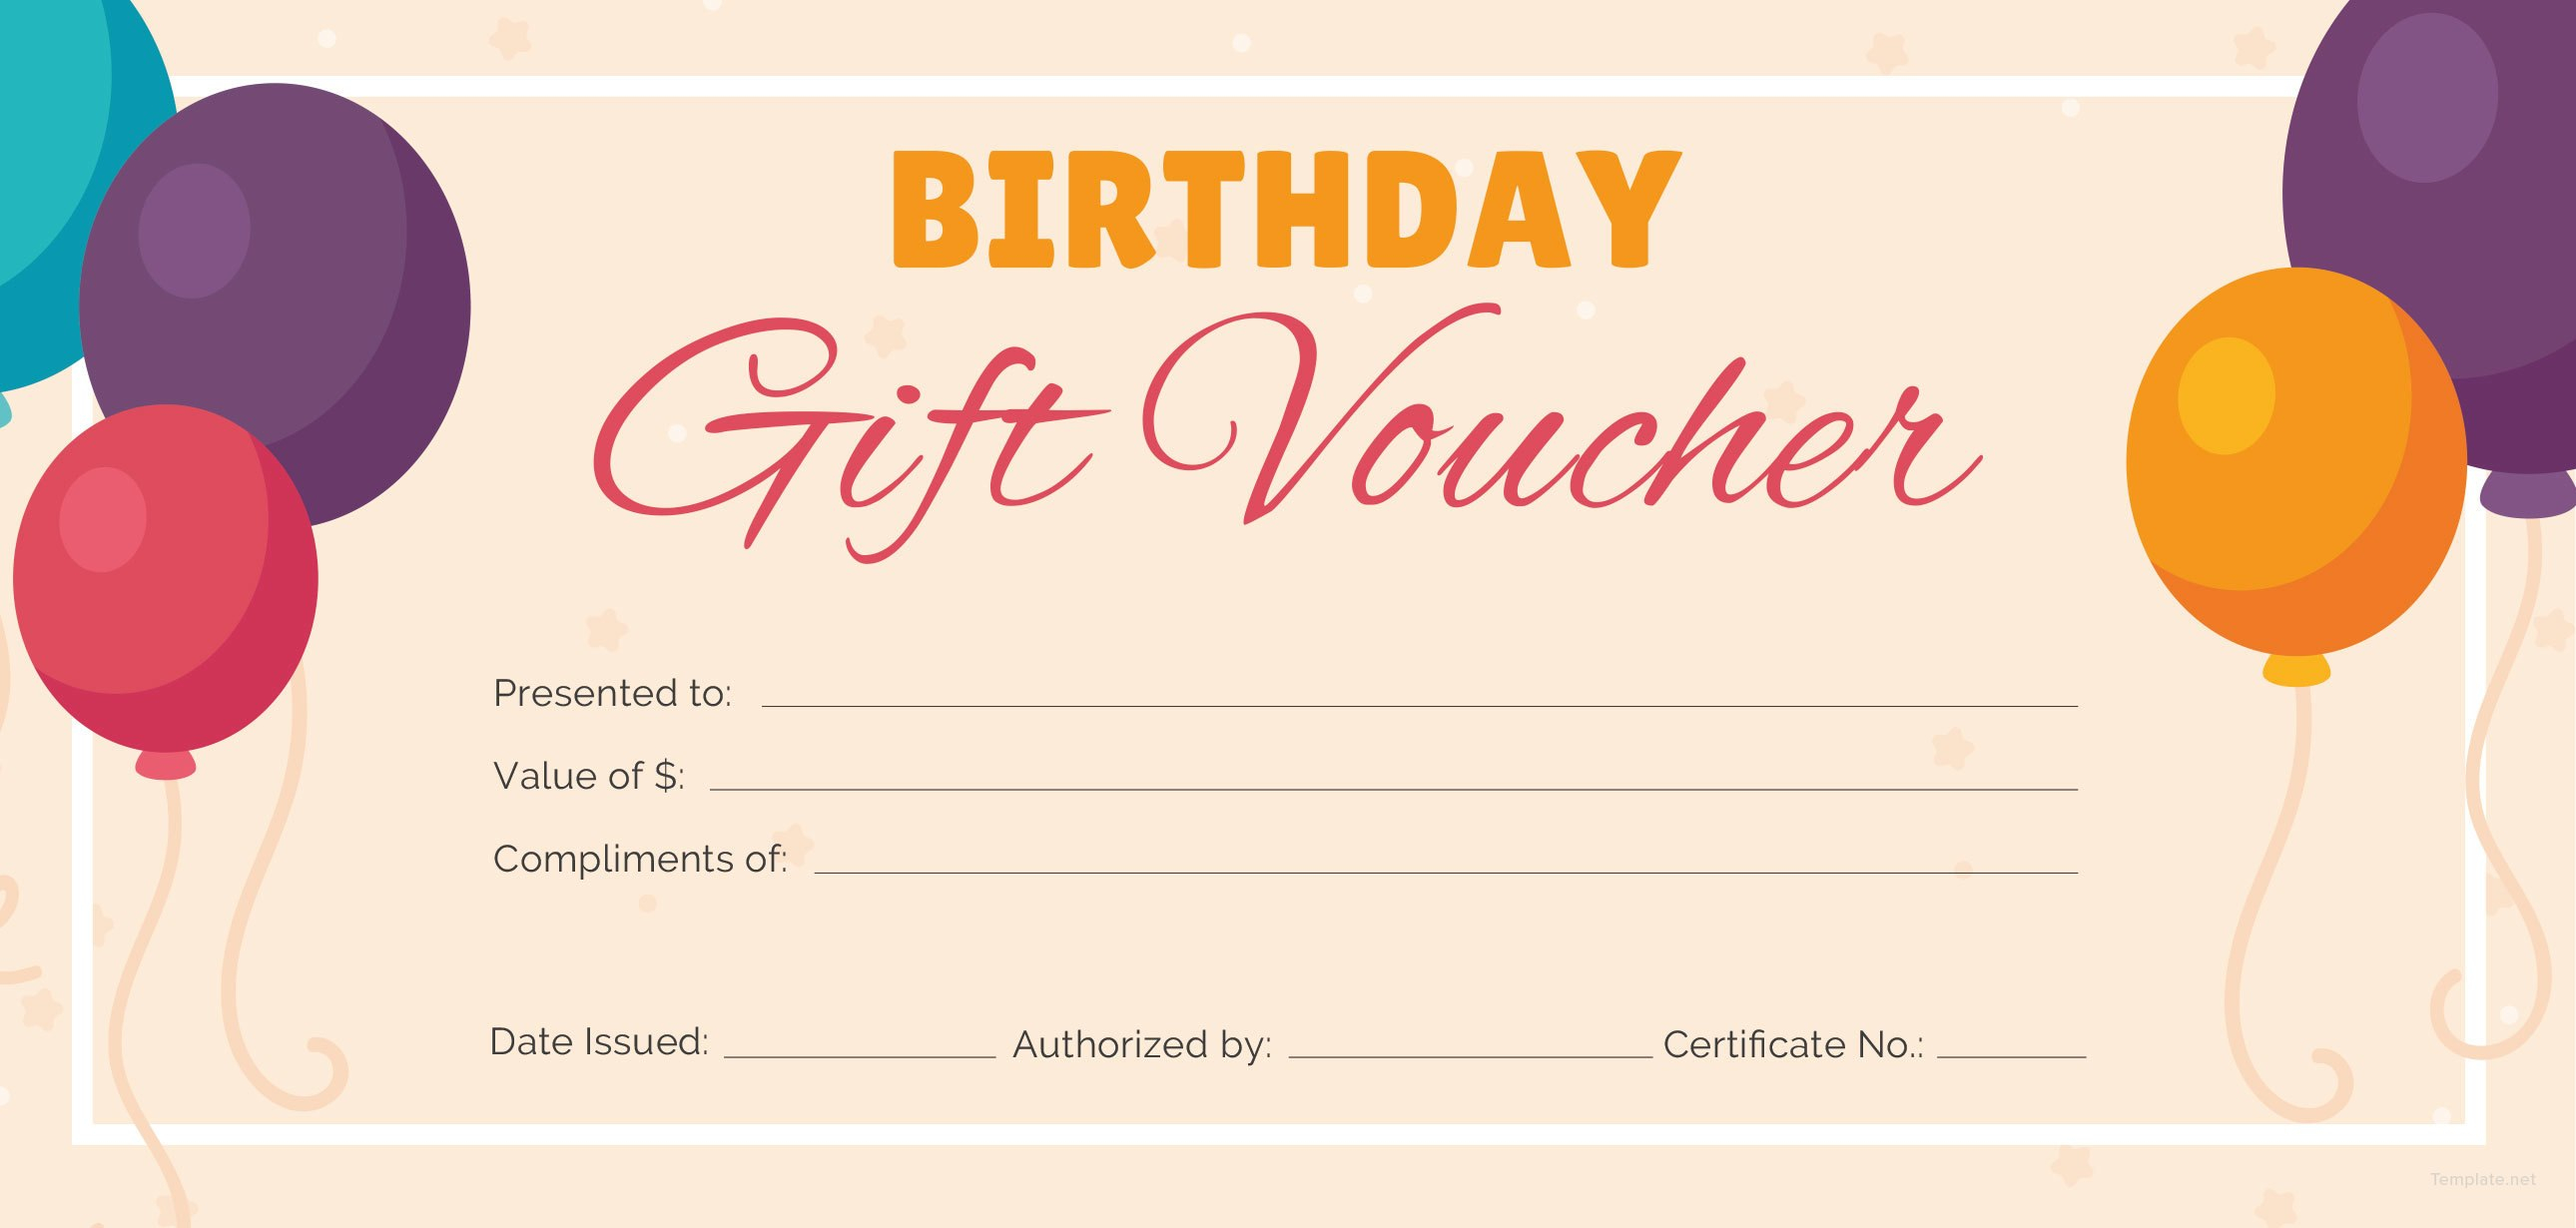 Free Birthday Gift Certificate Templates  Certificate Template For Track And Field Certificate Templates Free